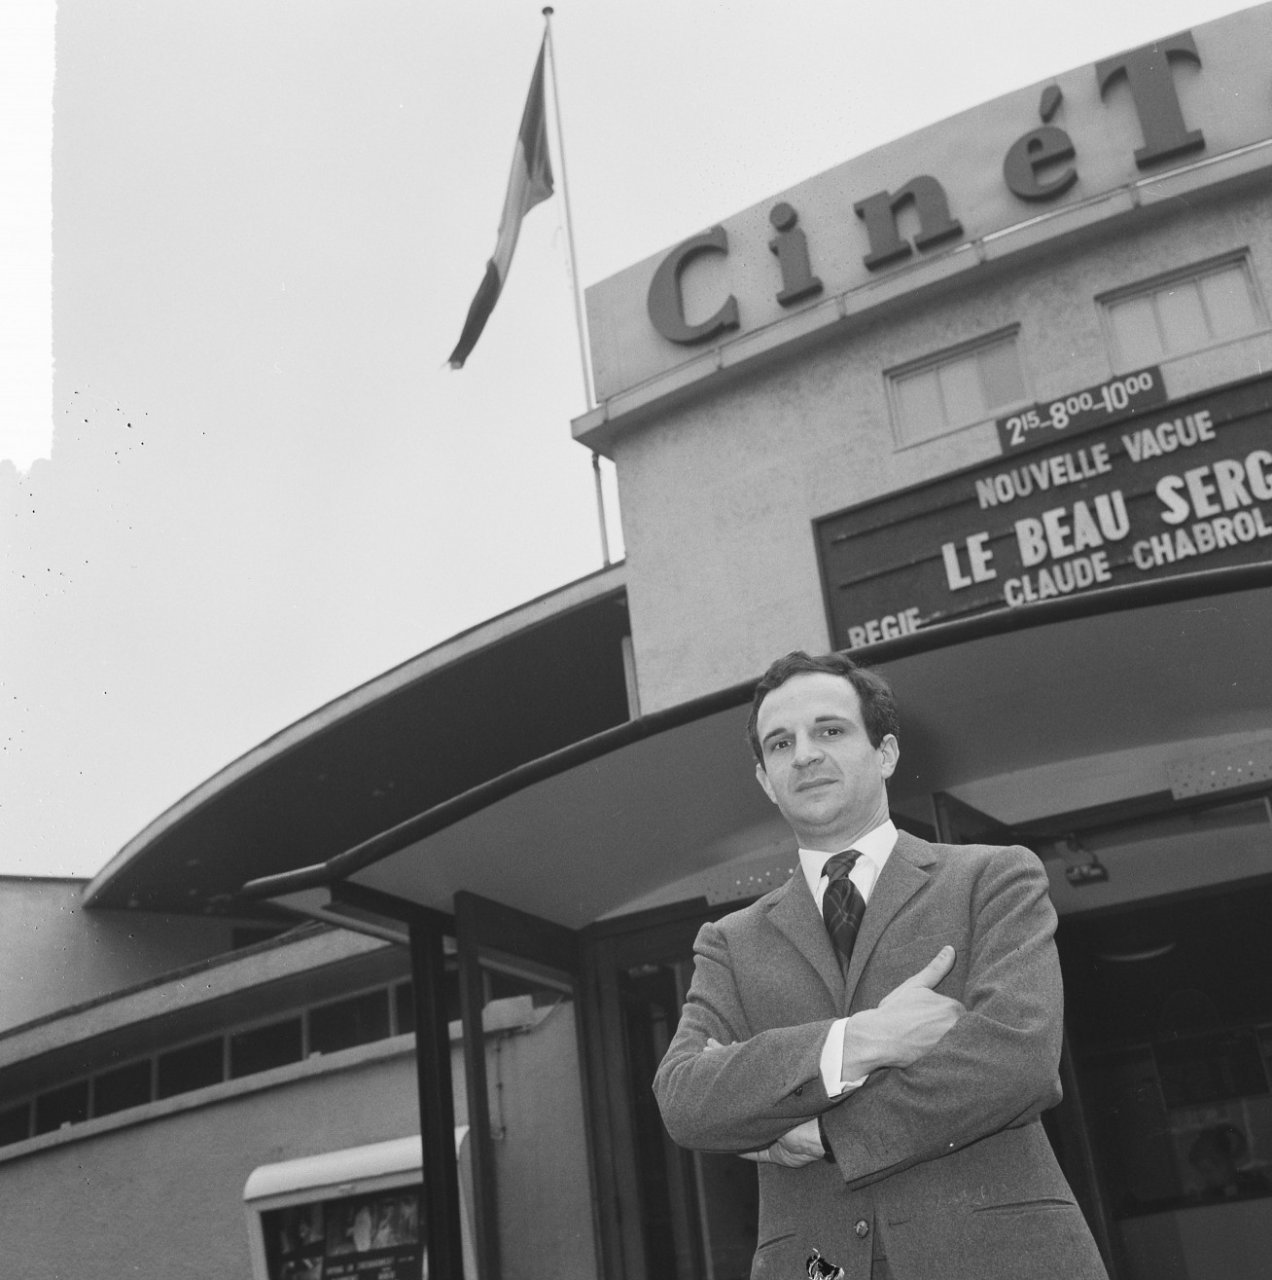 François Truffaut stands outside of cinema showing Charbol's  Le Beau Serge , one of the first New Wave films.